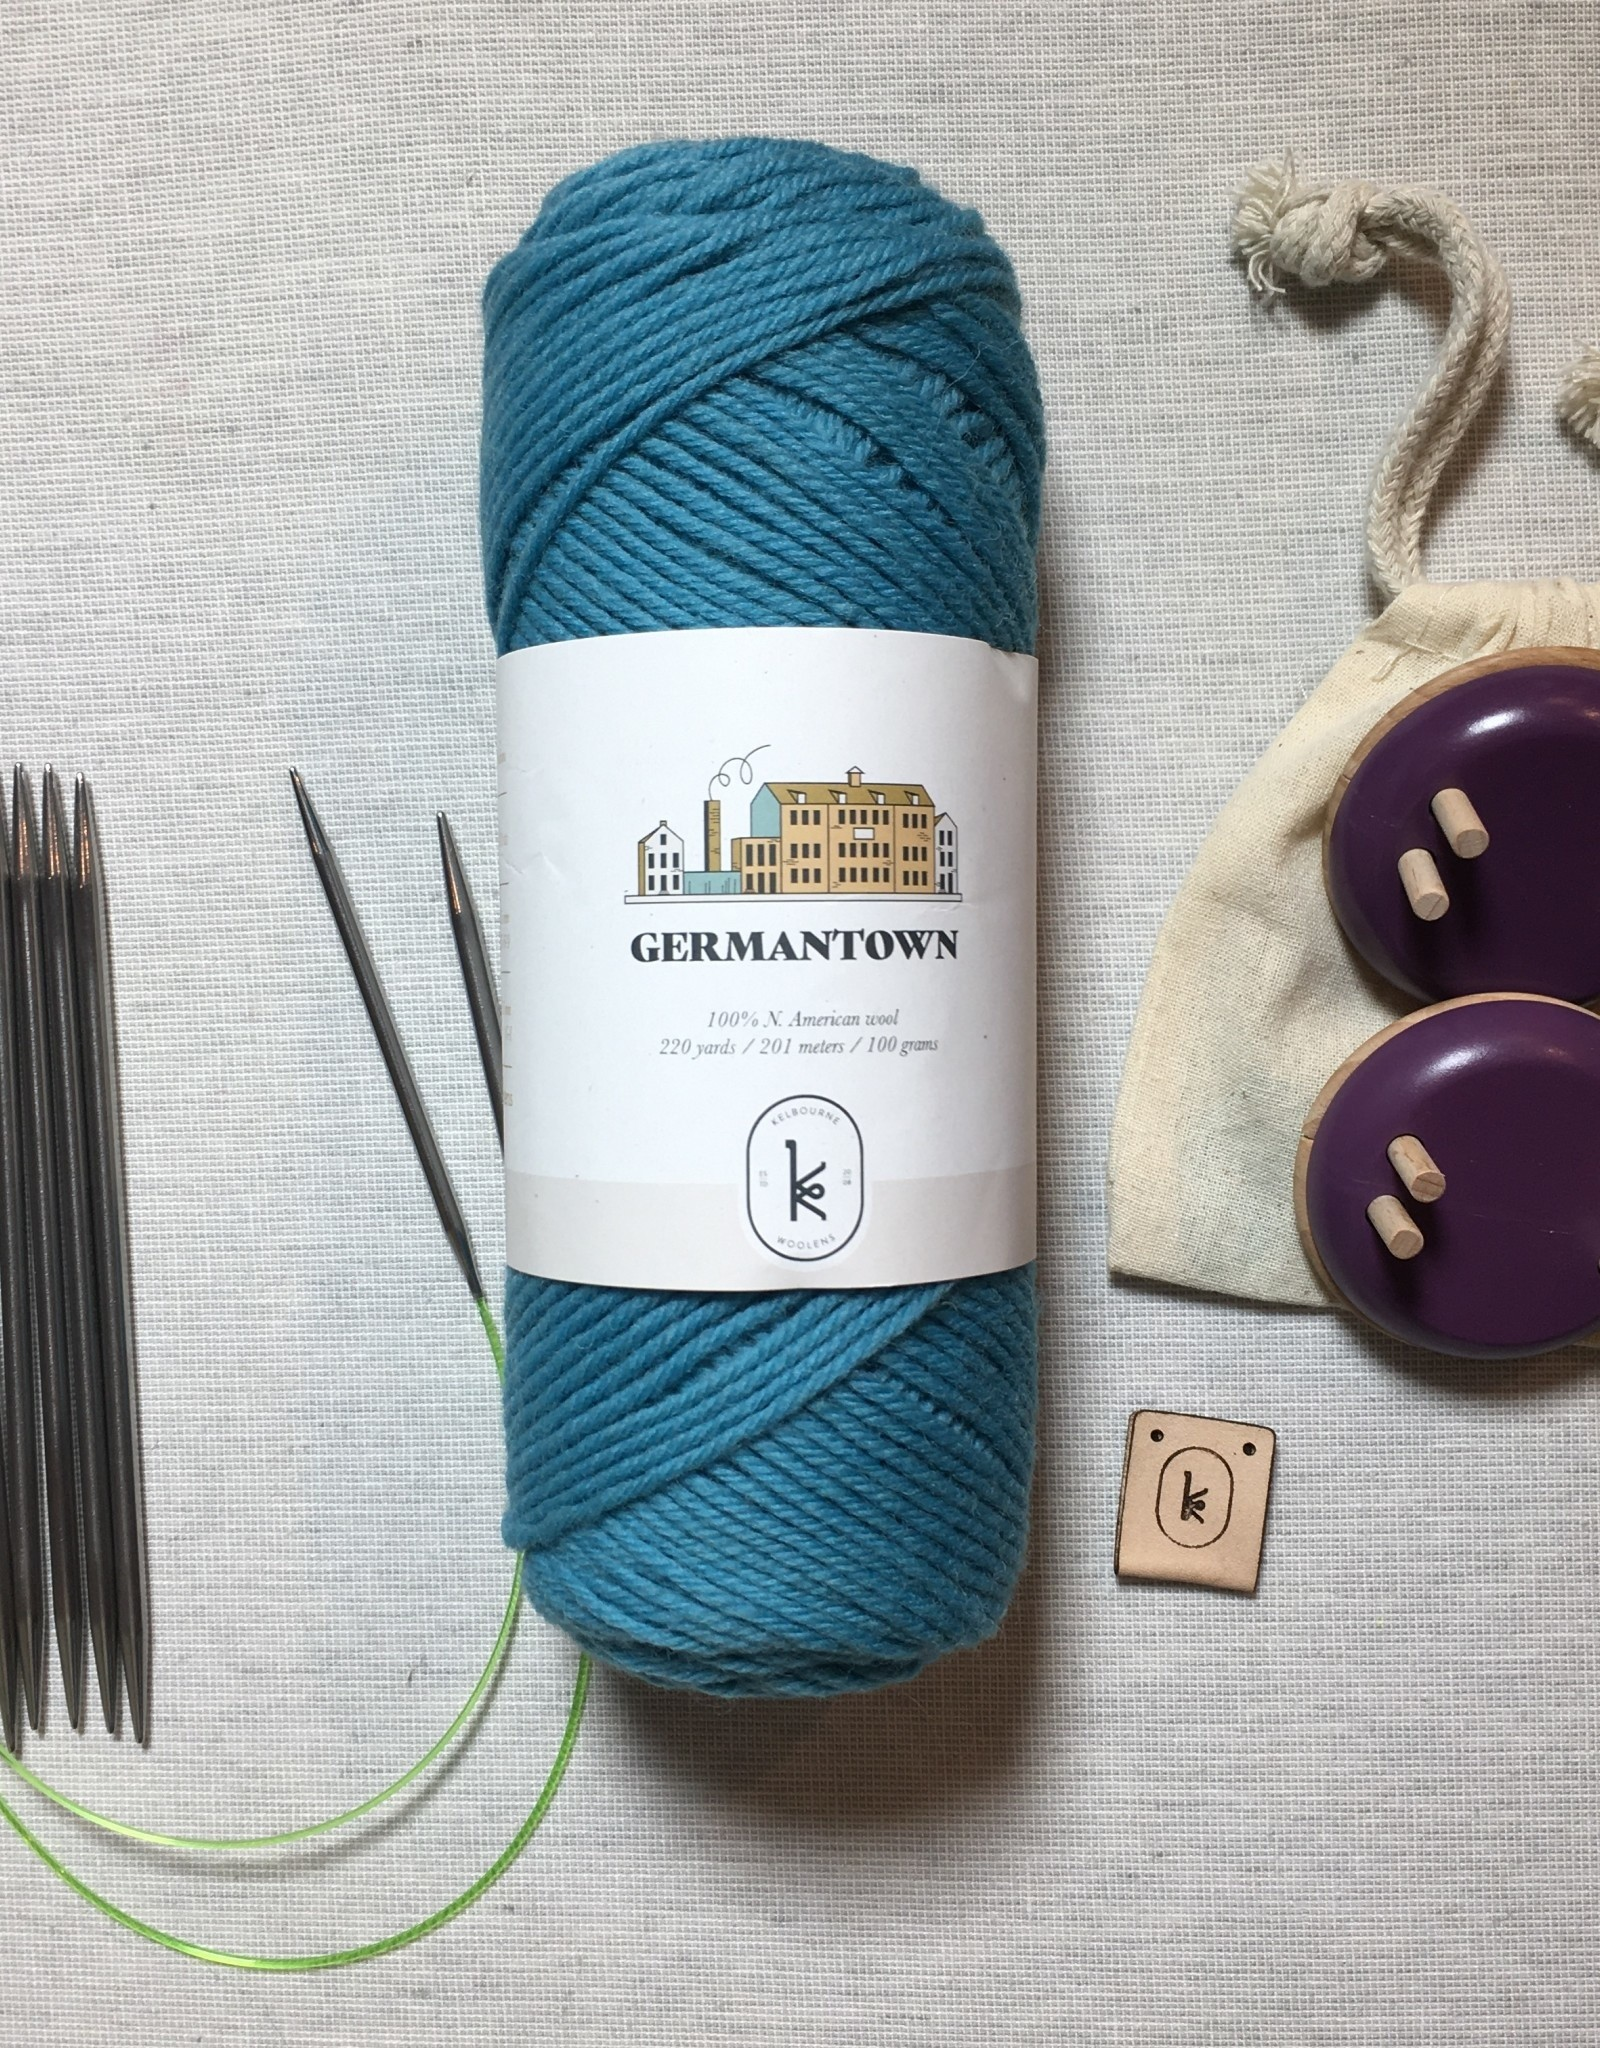 fibre space Learn to Knit Series - Kit Three: